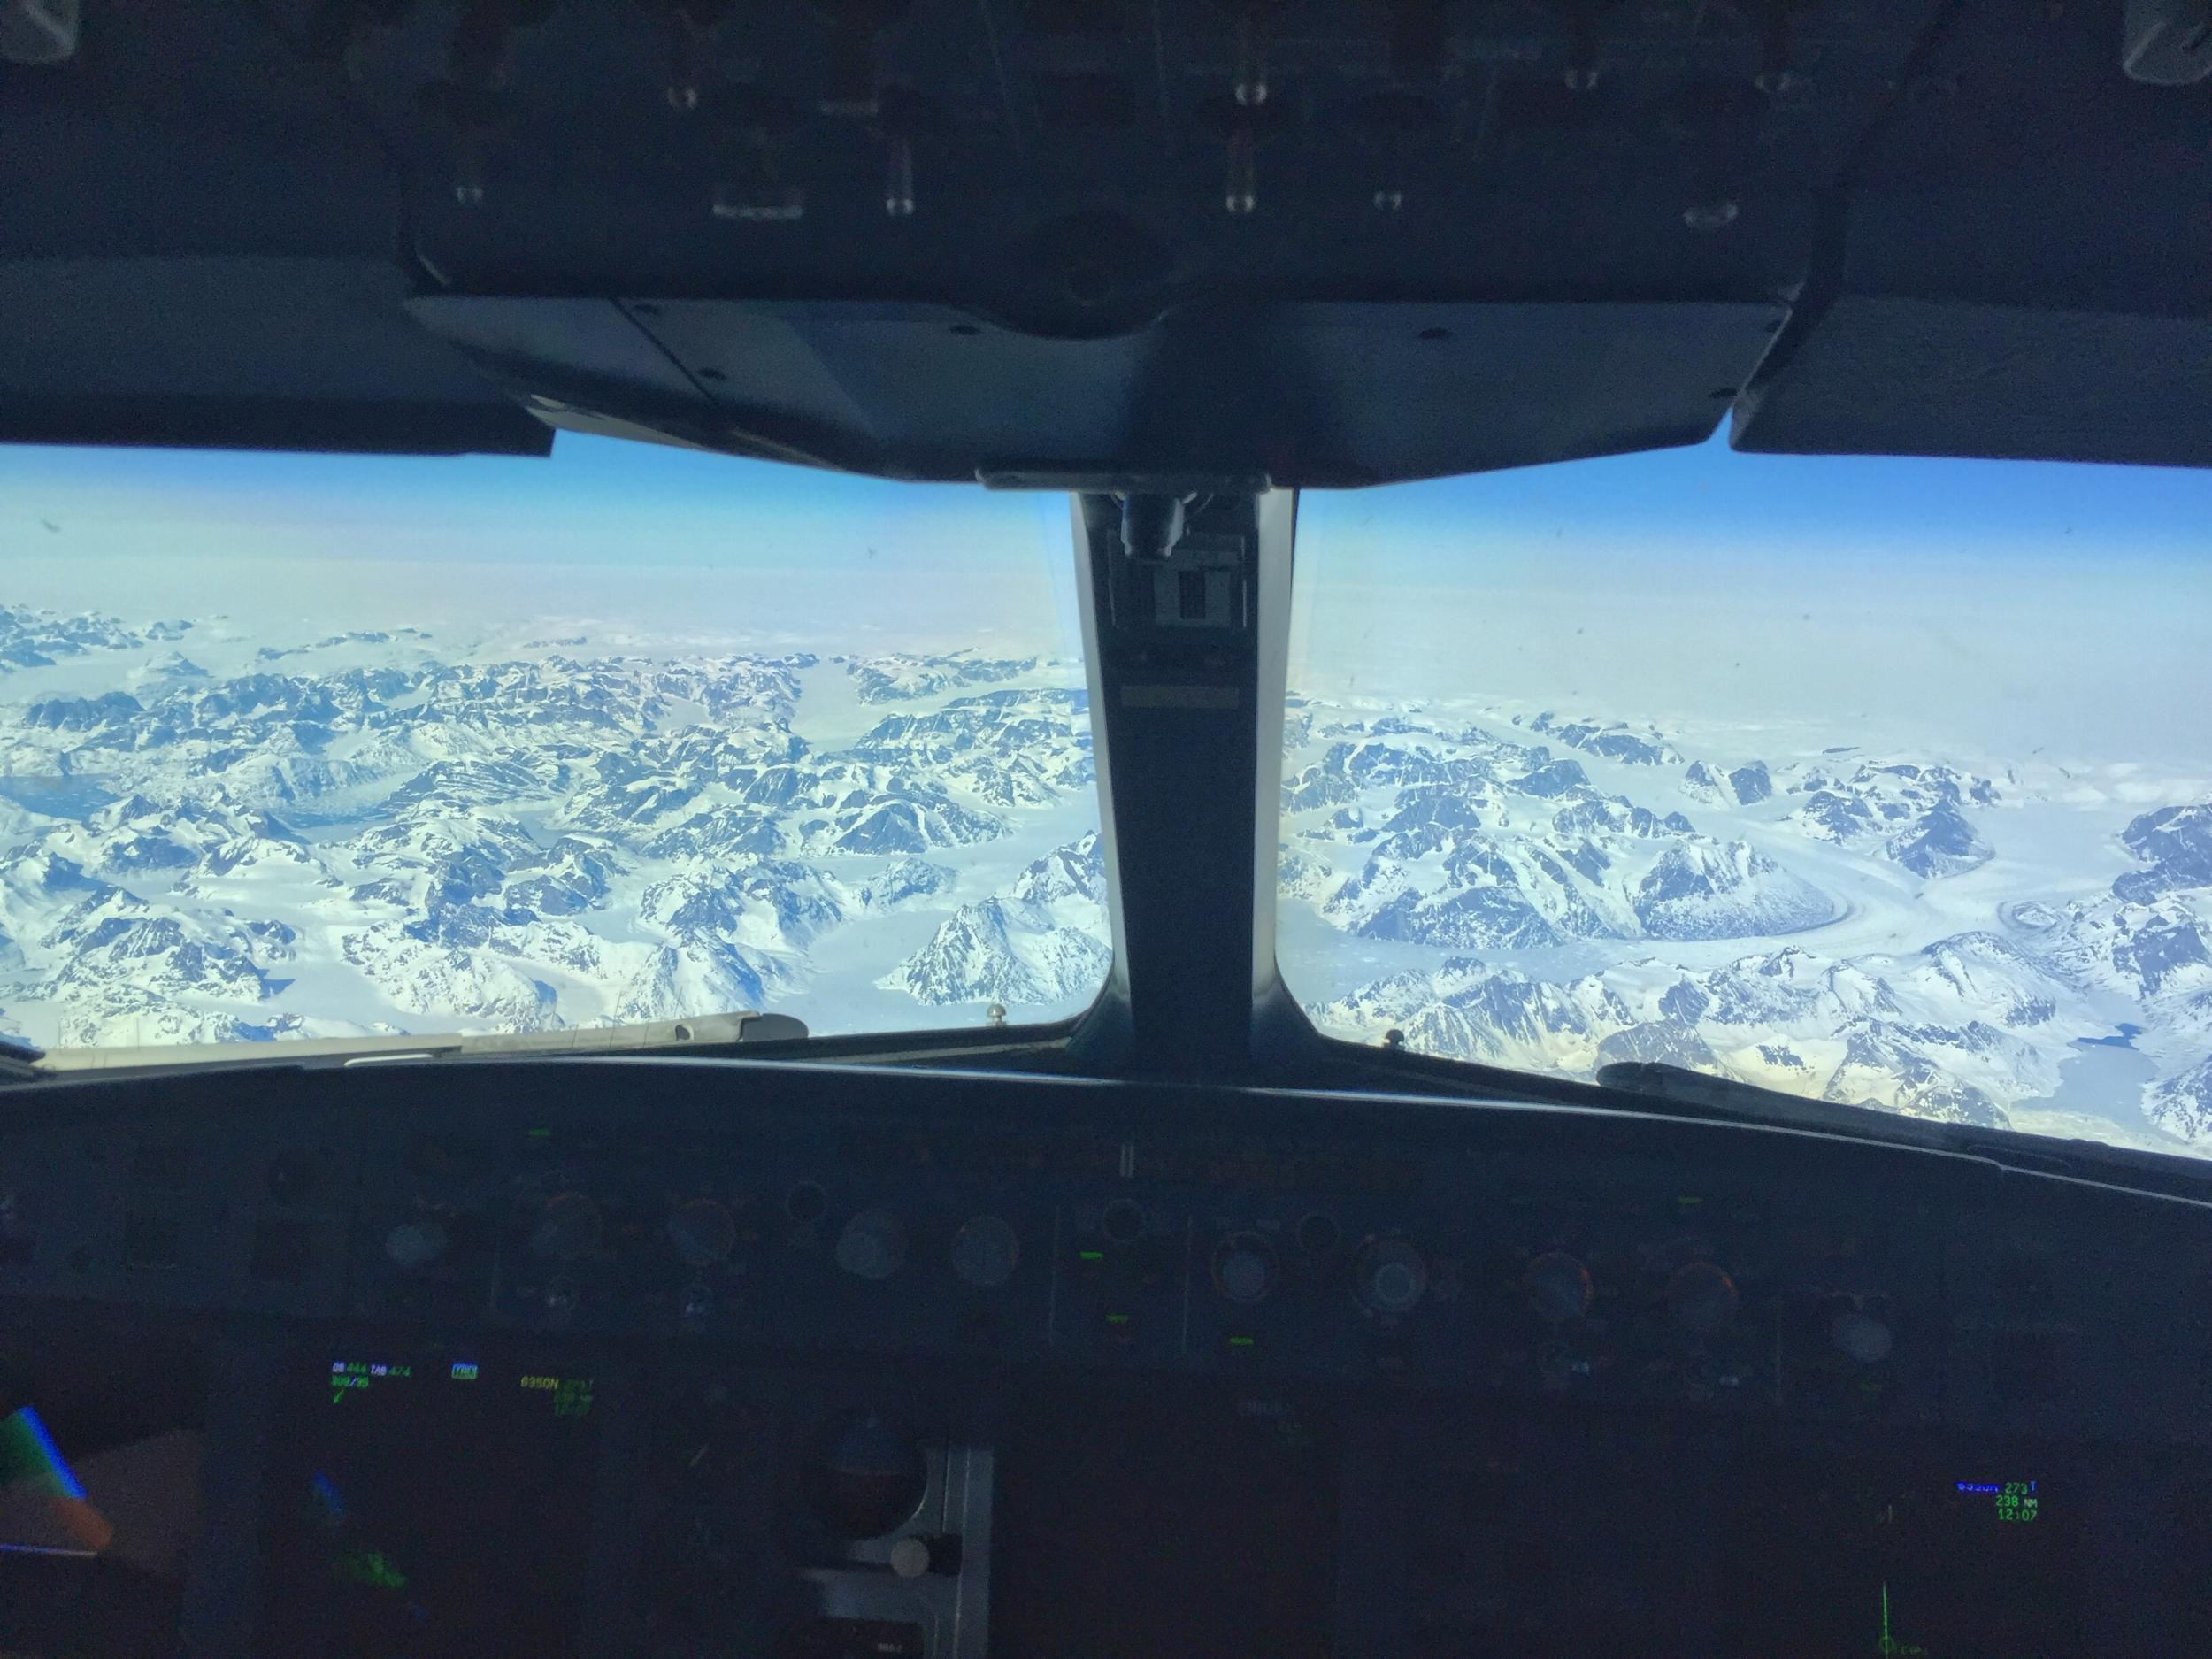 What it's like to fly a plane: A pilot's view from the